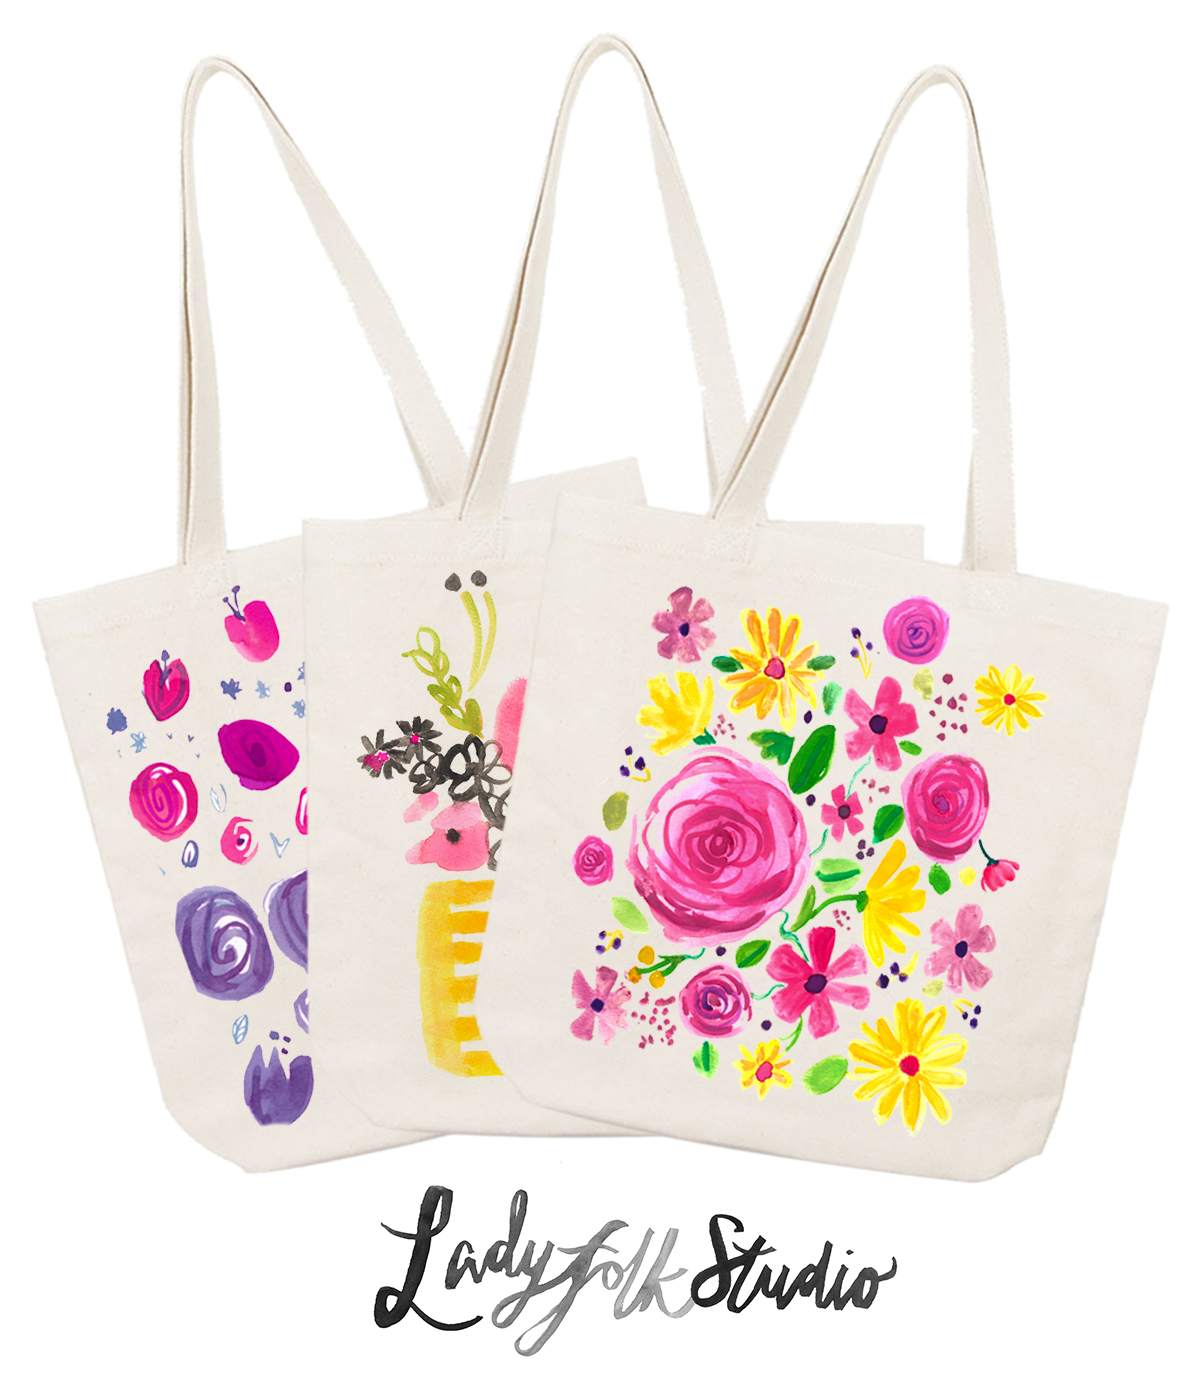 LadyfolkStudio-watercolor-tote-workshop-blog-1.jpg